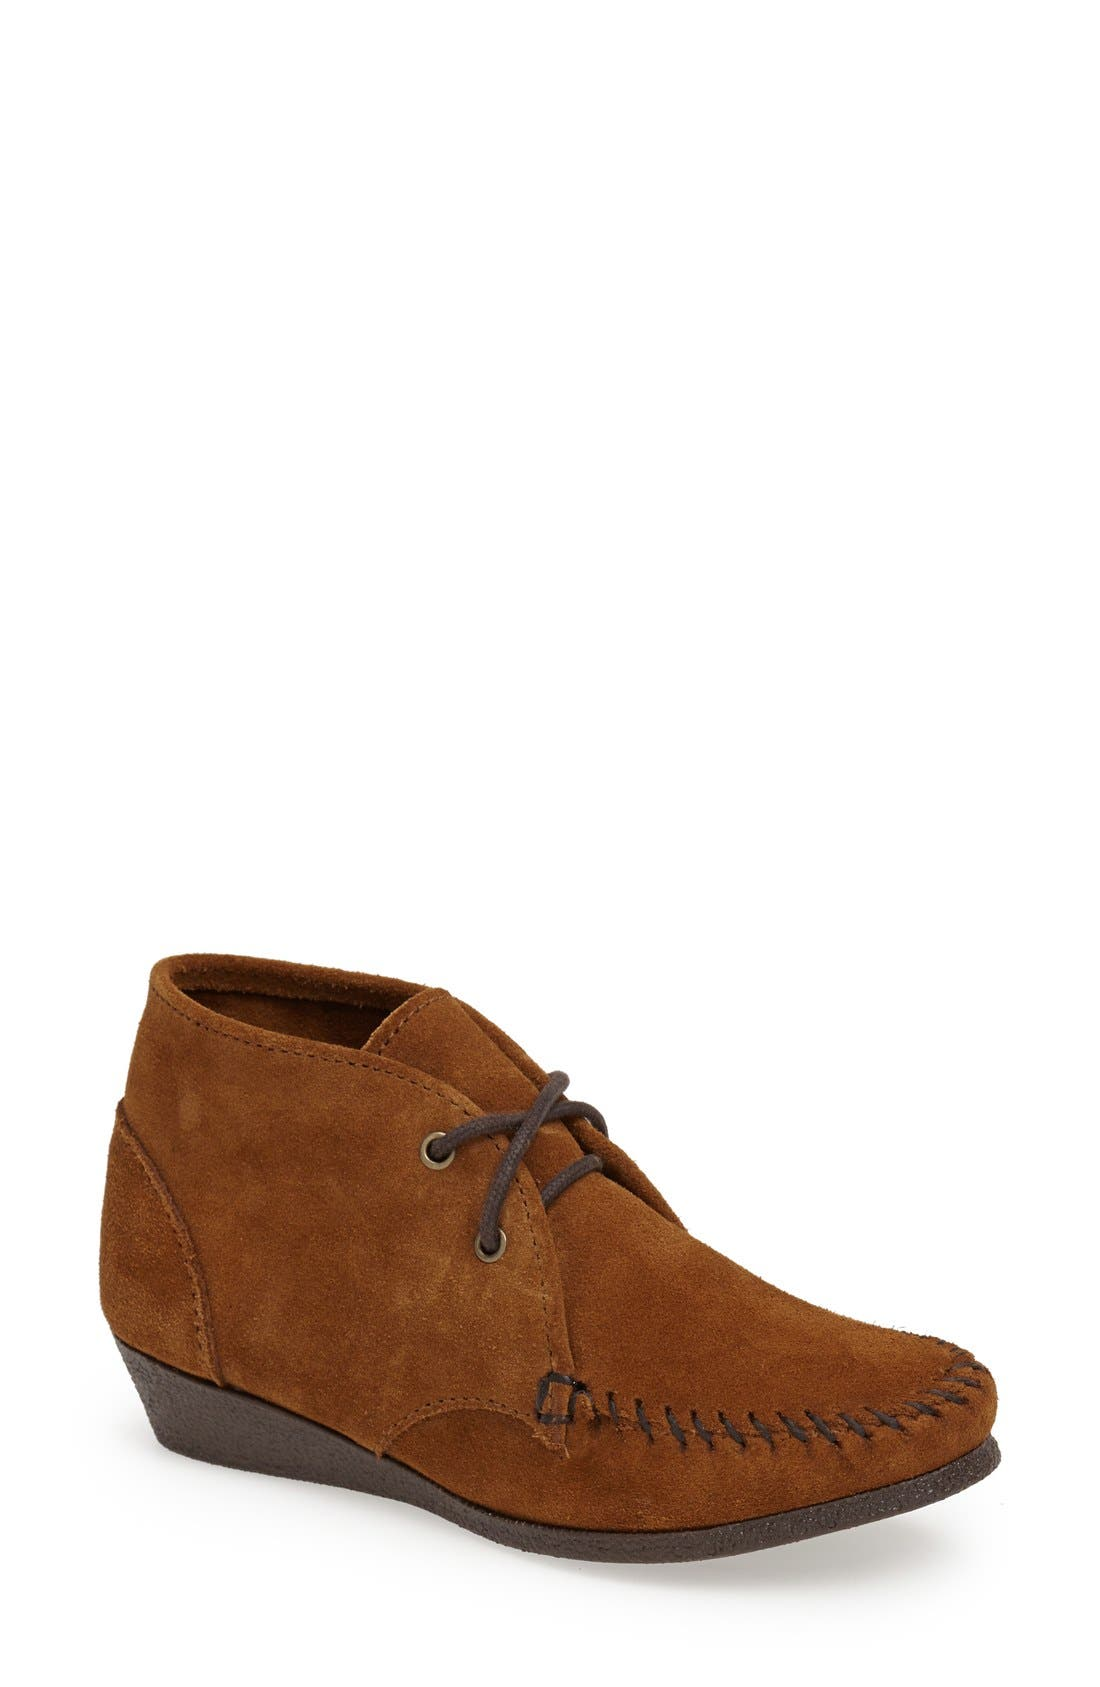 Main Image - Minnetonka Chukka Wedge Bootie (Women)